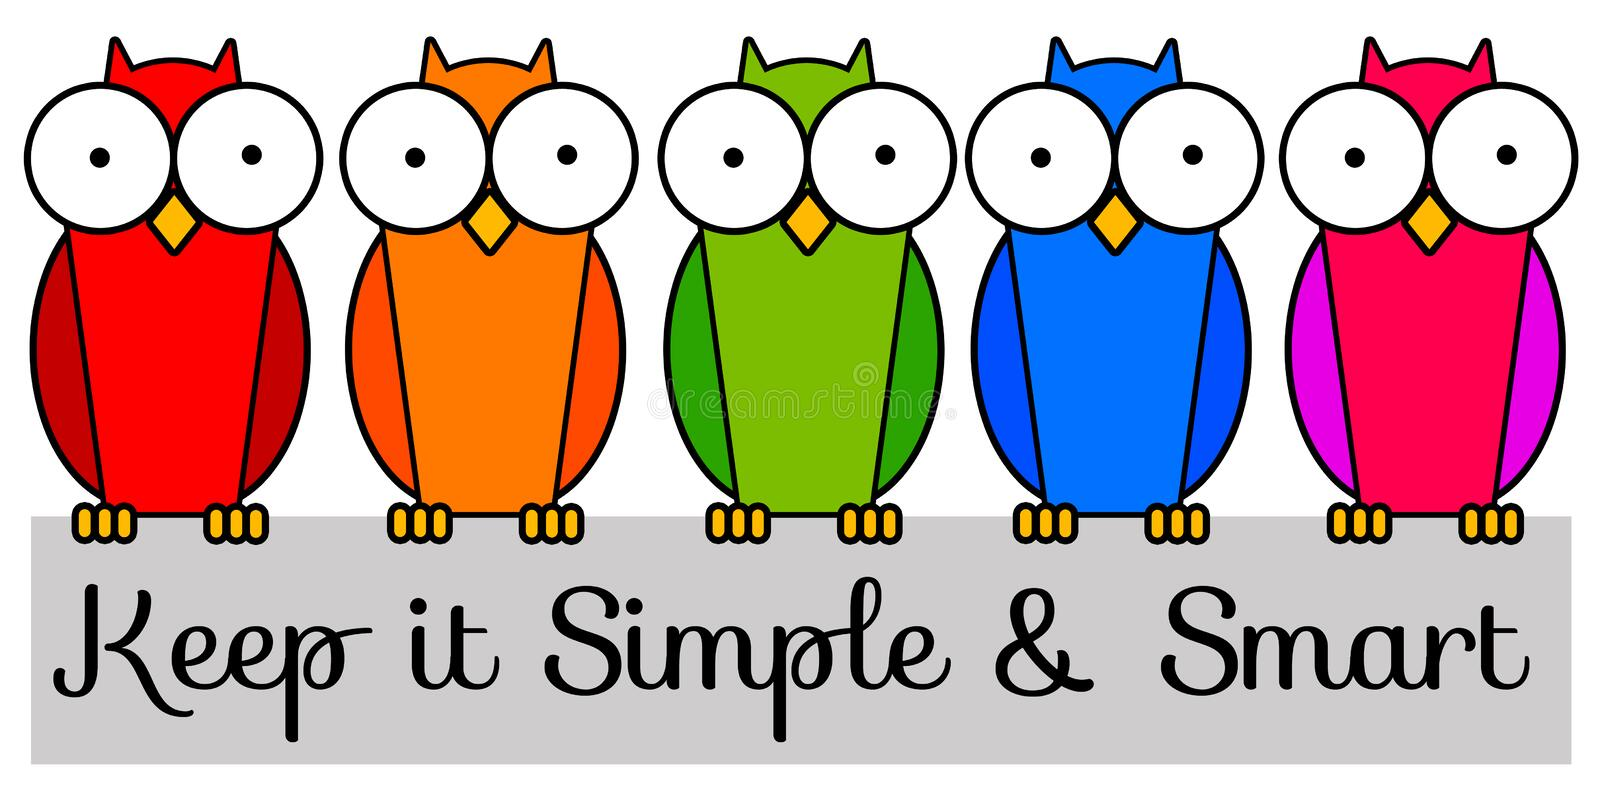 Keep it simple and smart vector illustration